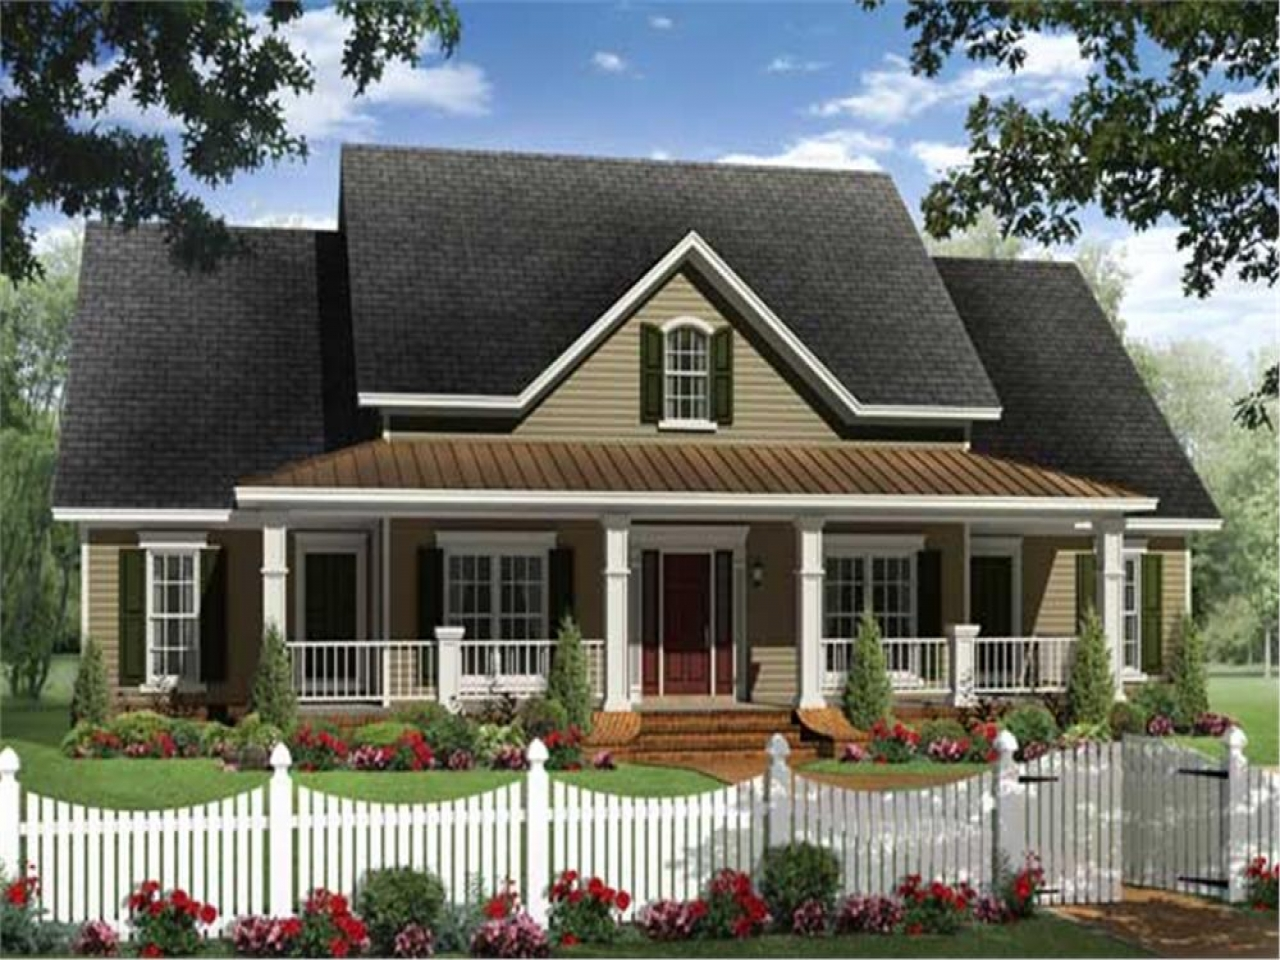 Rustic ranch house plans country ranch house plans small for 2016 ranch house plans